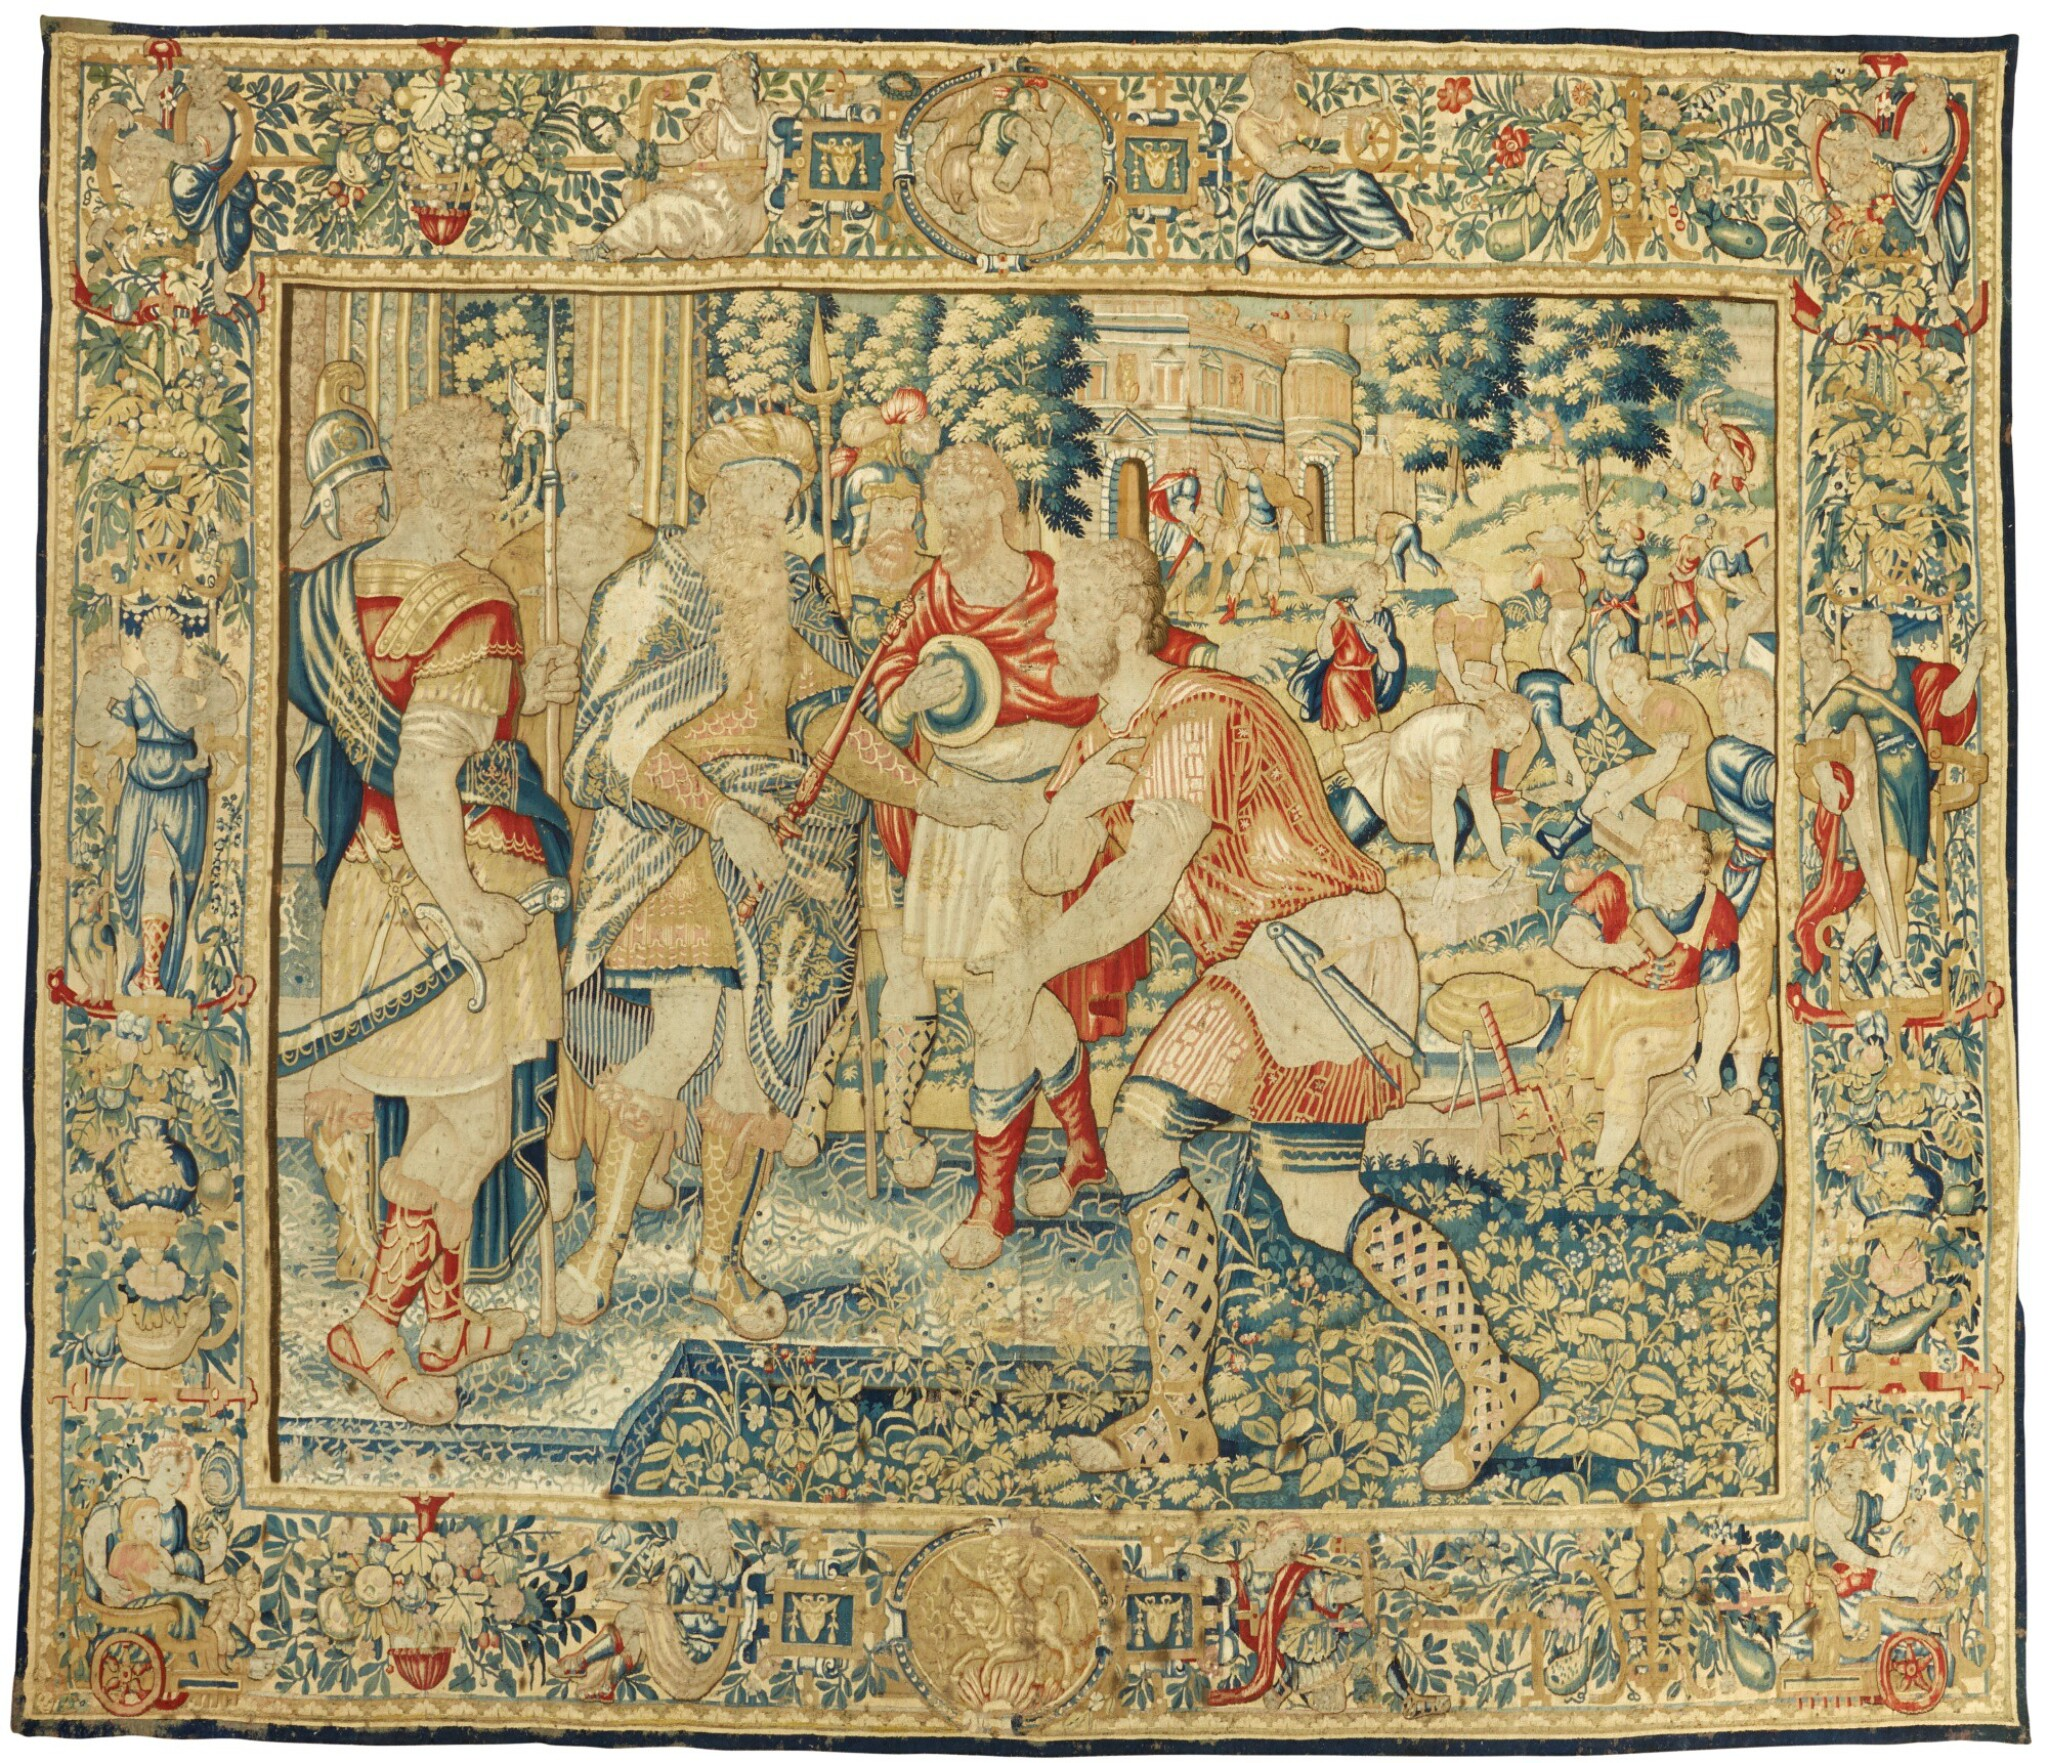 View full screen - View 1 of Lot 82. A FLEMISH OLD TESTAMENT BIBLICAL NARRATIVE TAPESTRY, BRUSSELS SECOND HALF 16TH CENTURY.